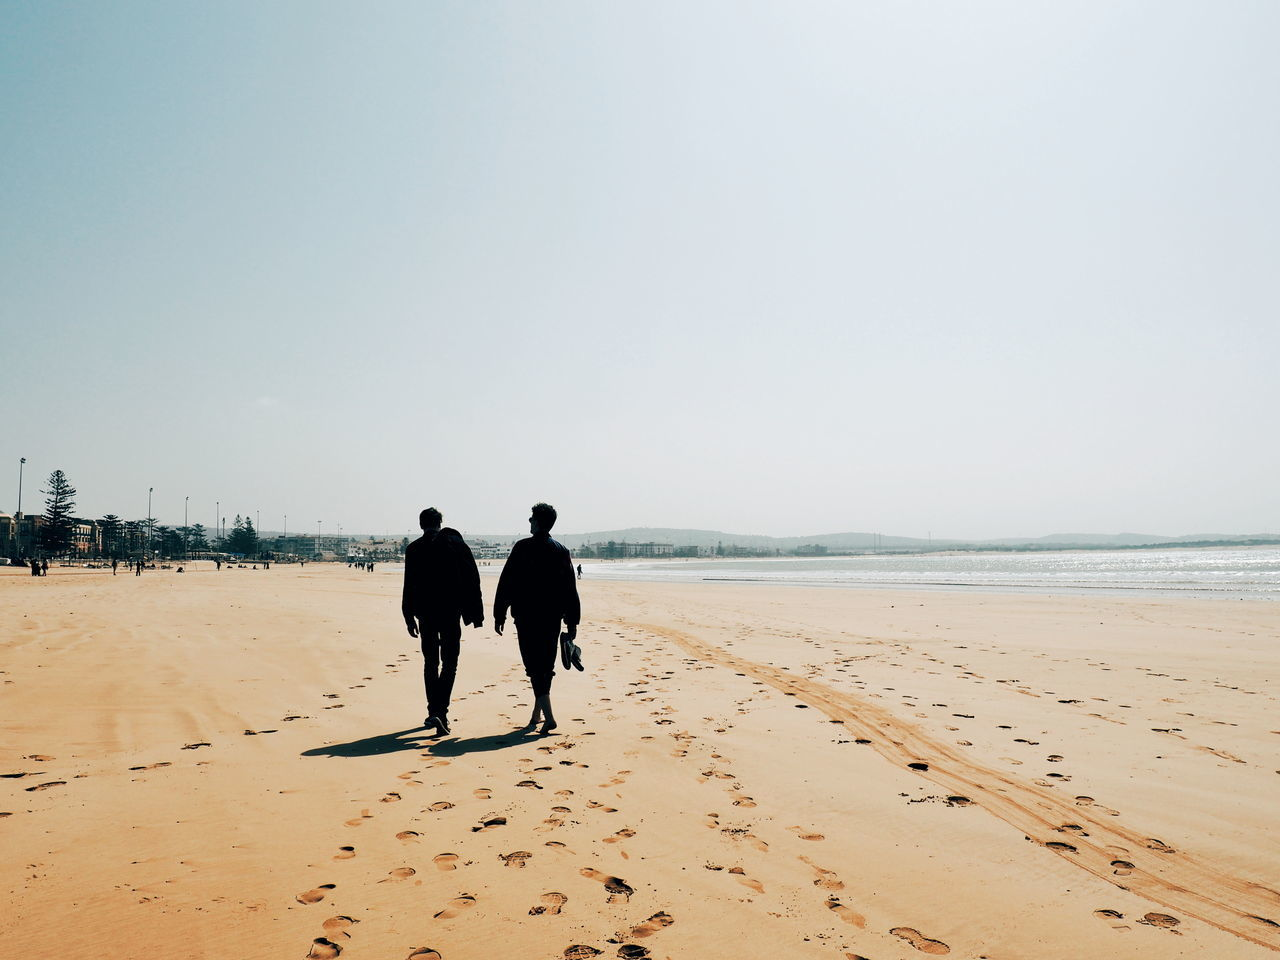 Adult Adults Only Beach Best Friends Chasing Light Friends Friendship Friendship. ♡   Full Length Men Nature Only Men Outdoors People Real People Rear View Sand Sea Silhouette Sky Togetherness Two People Vacations Walking Walking On The Beach